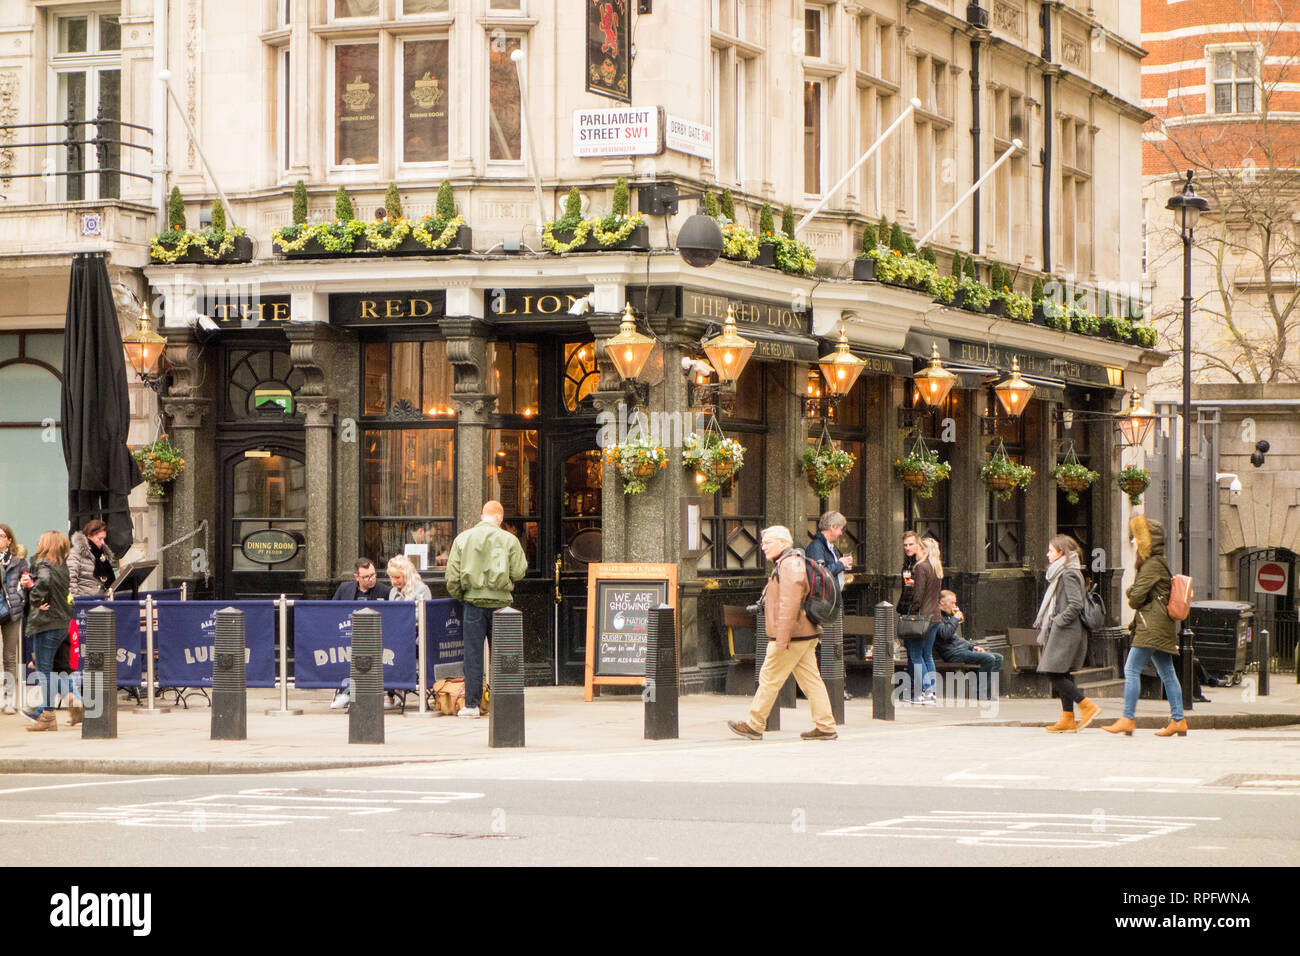 The Red Lion a Traditional English London pub on the corner of Parliament Street and Derby gate in London's Whitehall - Stock Image